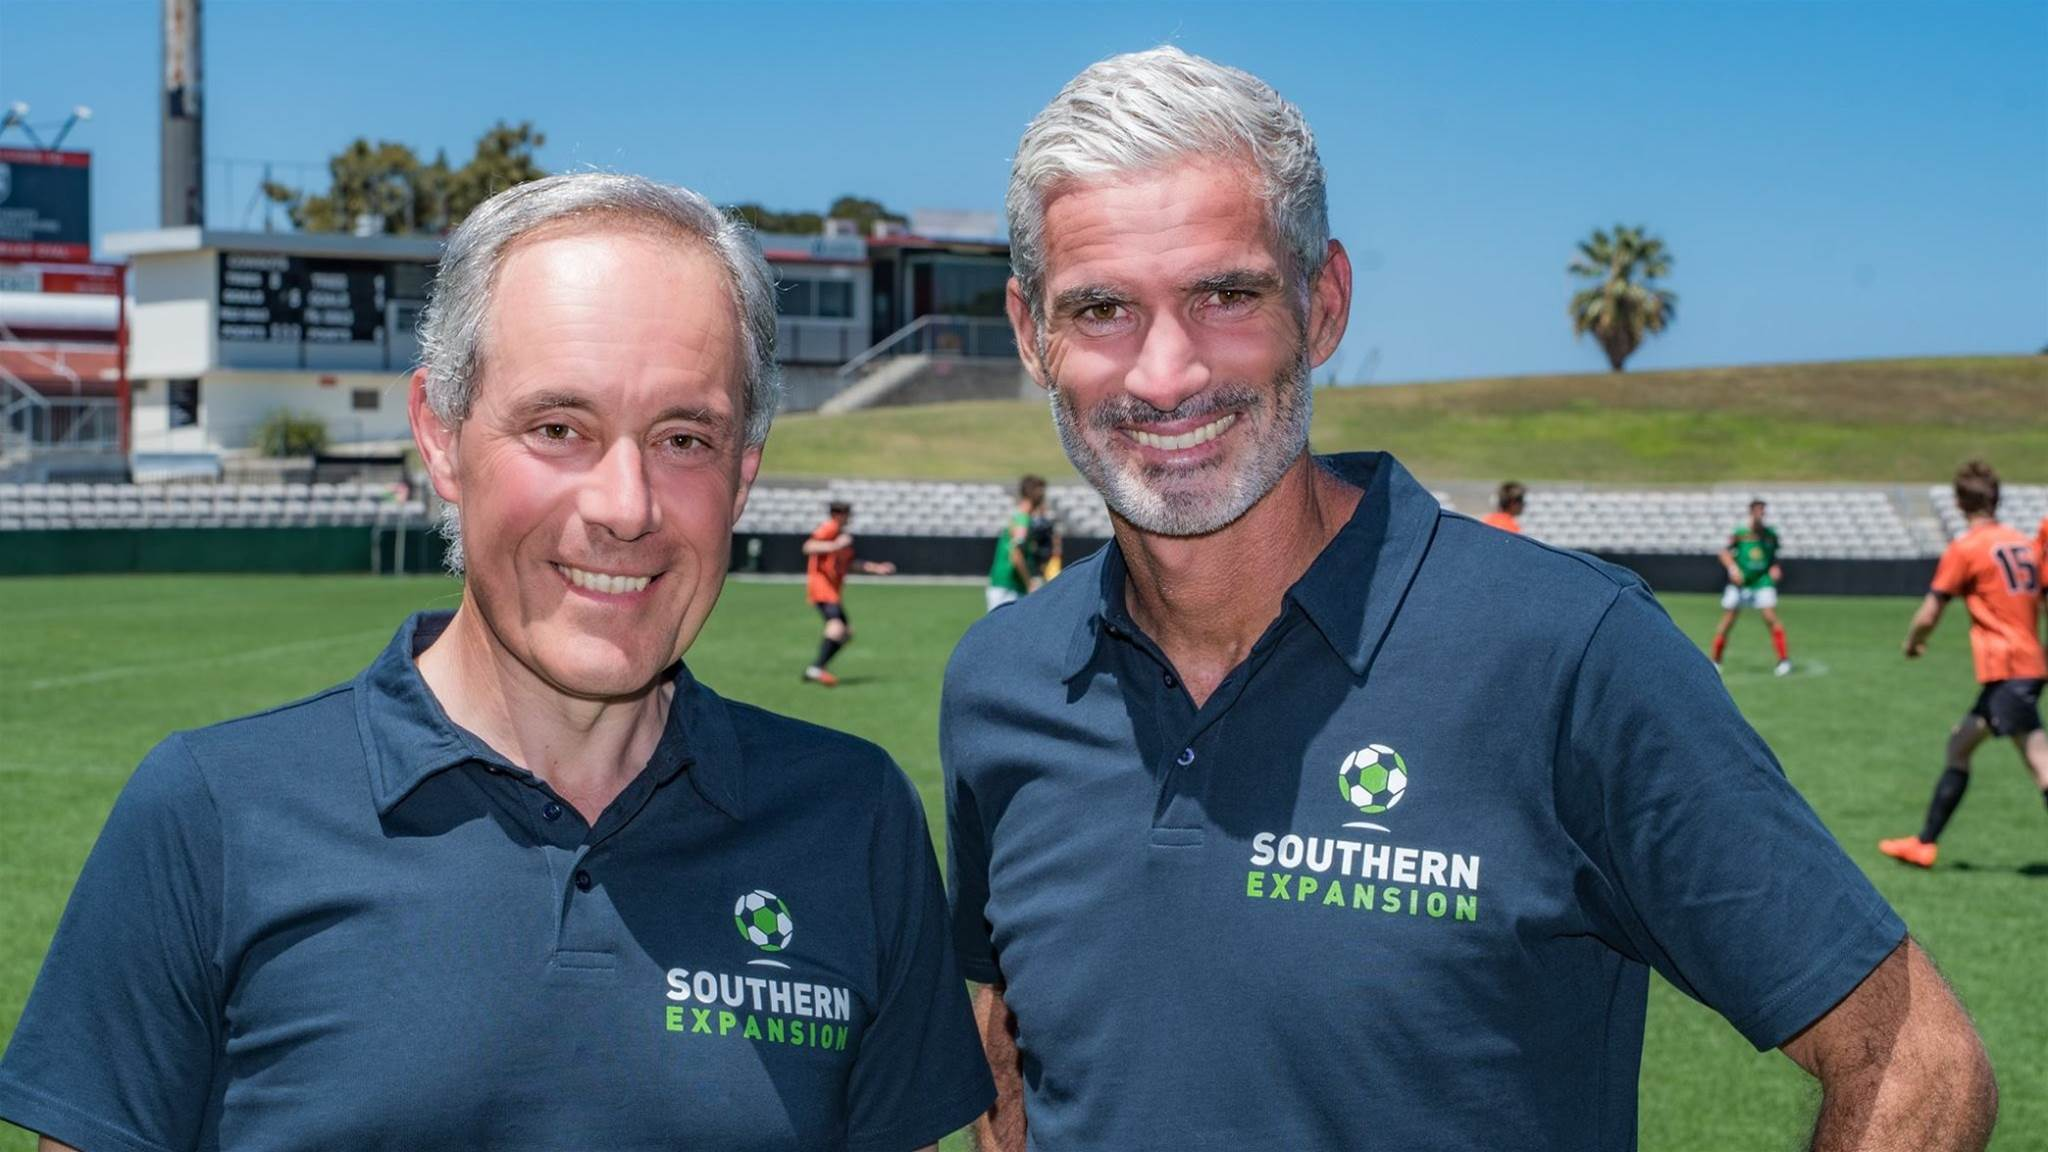 When it all goes South: Can Southern Expansion change the A-League model?